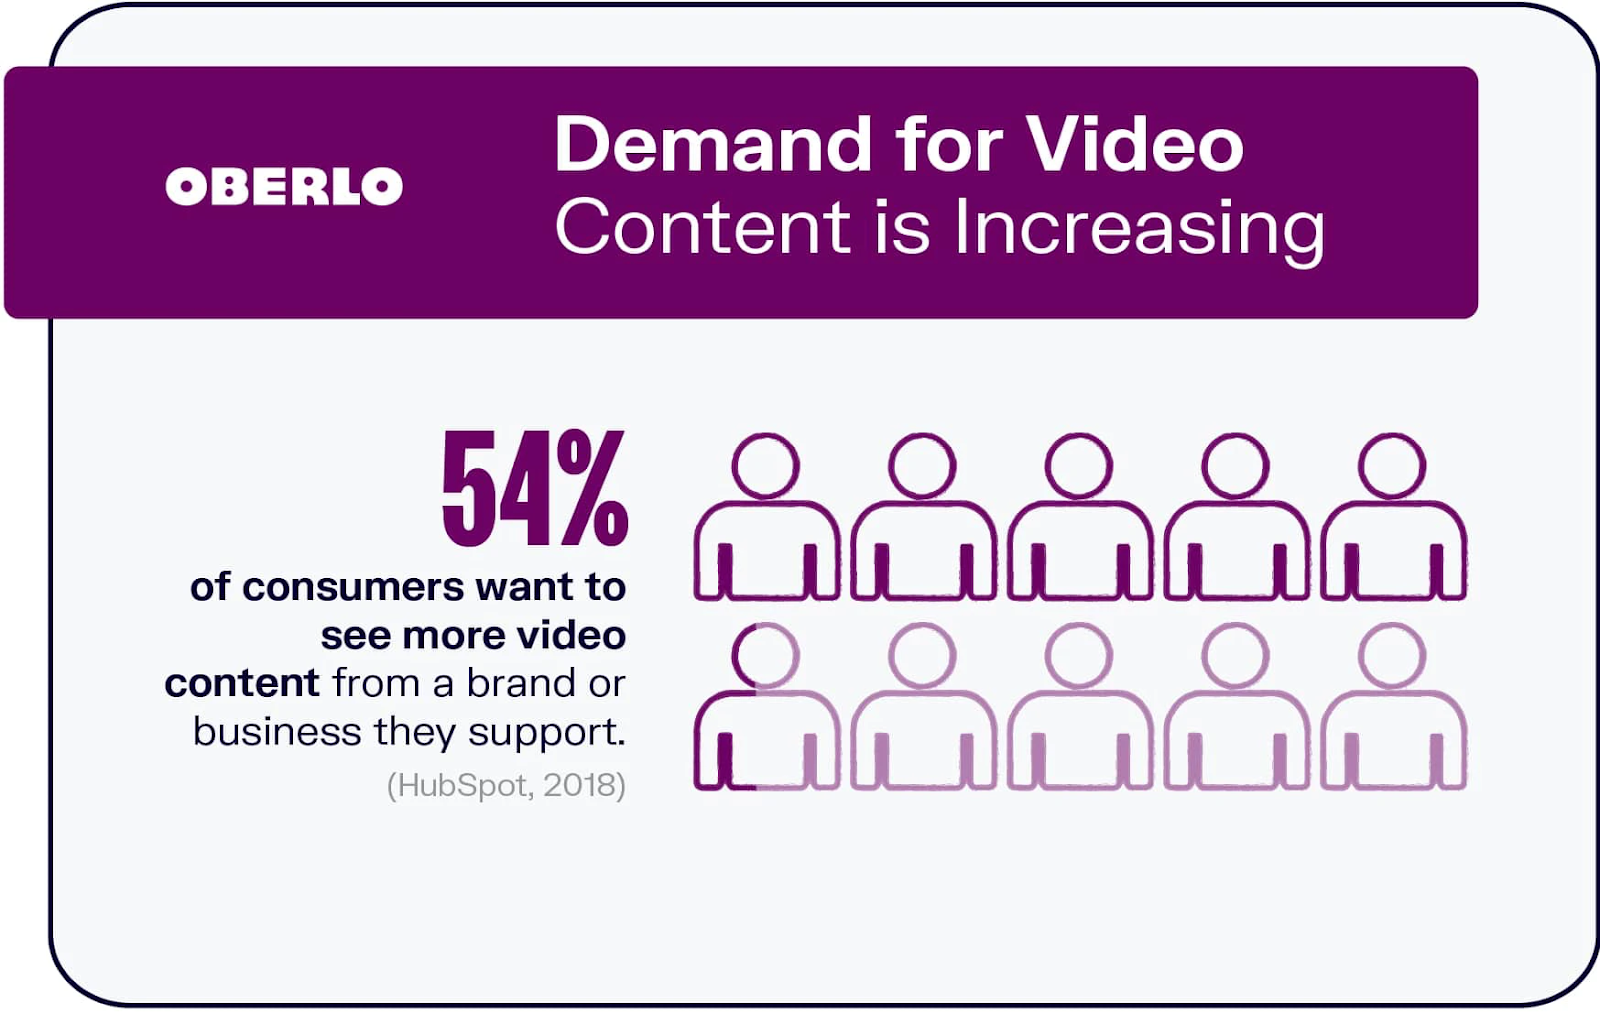 54% consumers want to see more video content